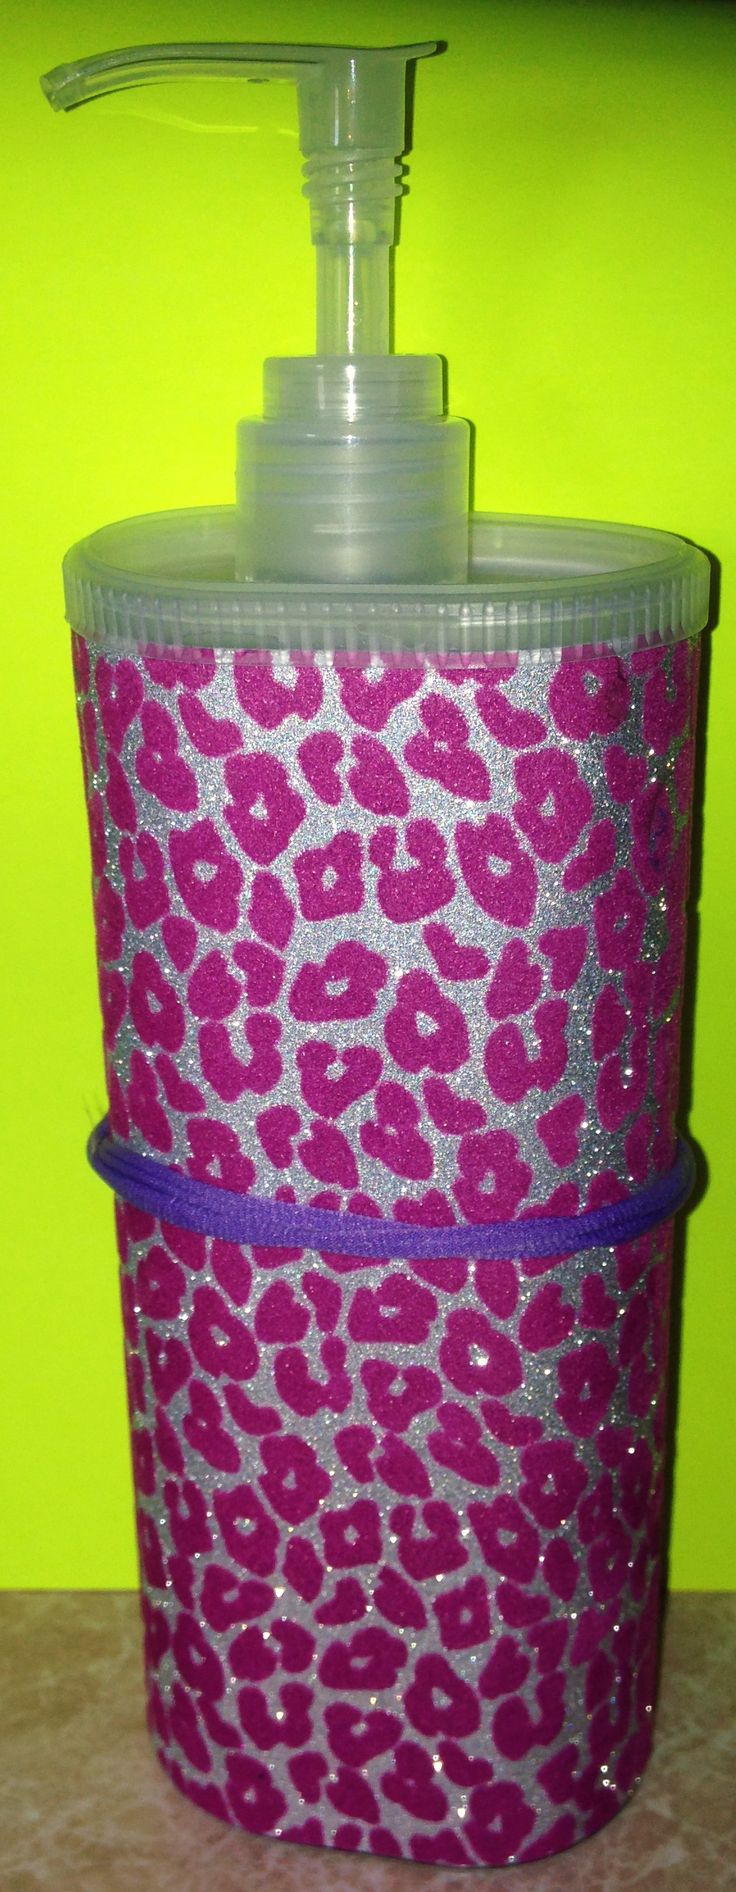 reusing crystal light containers - Google Search